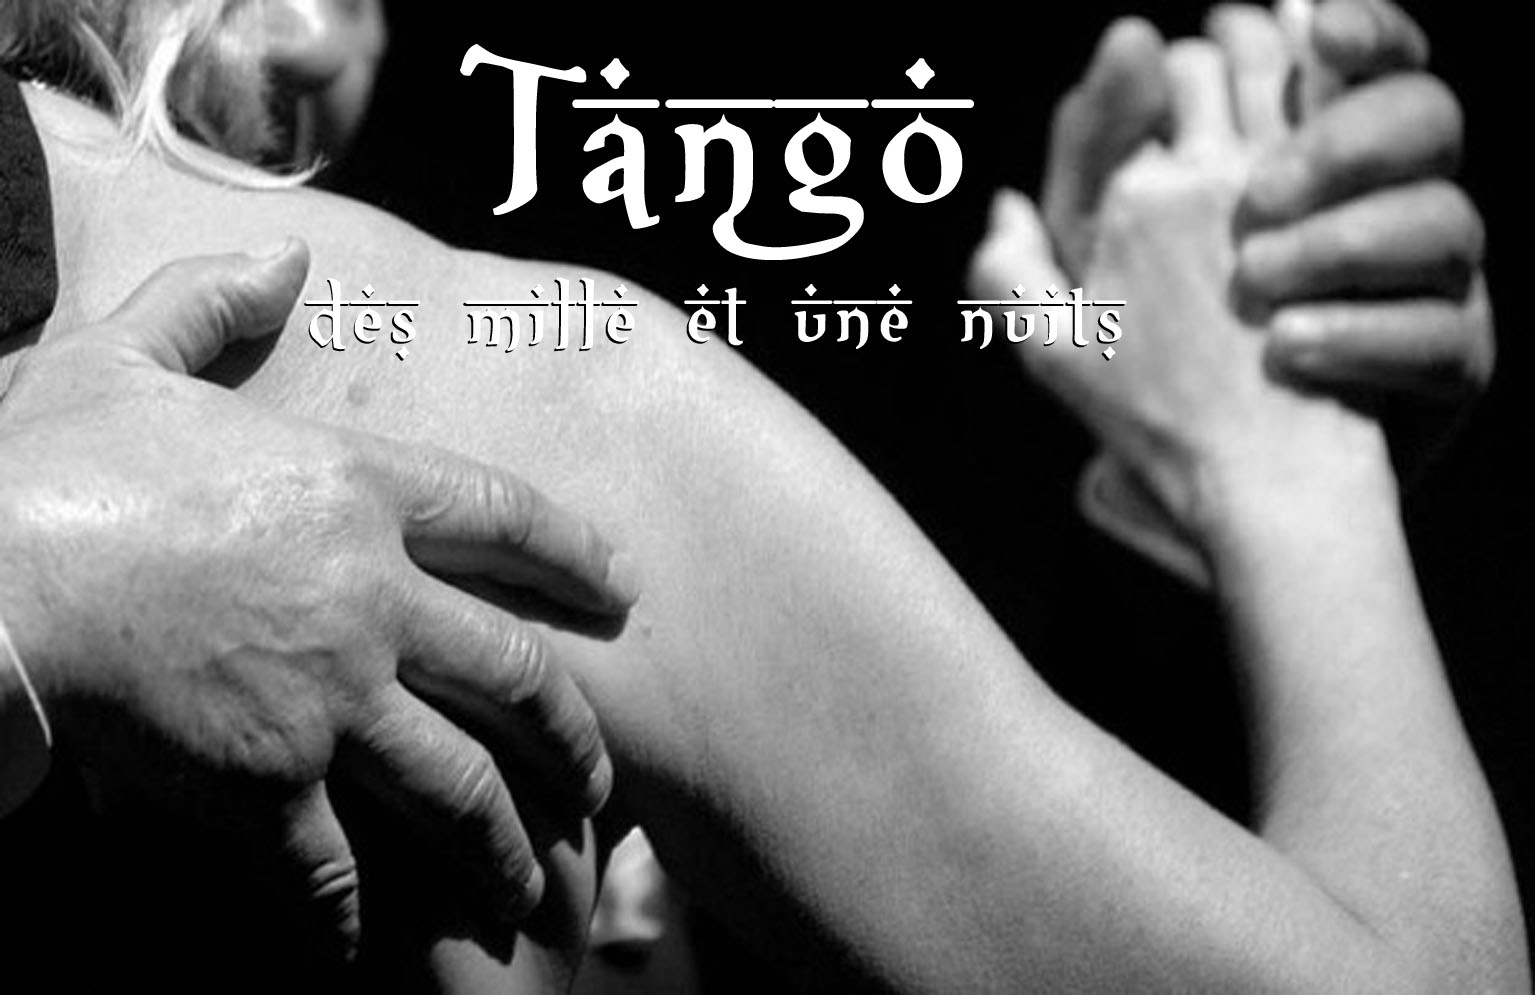 tango-mille-une-nuits